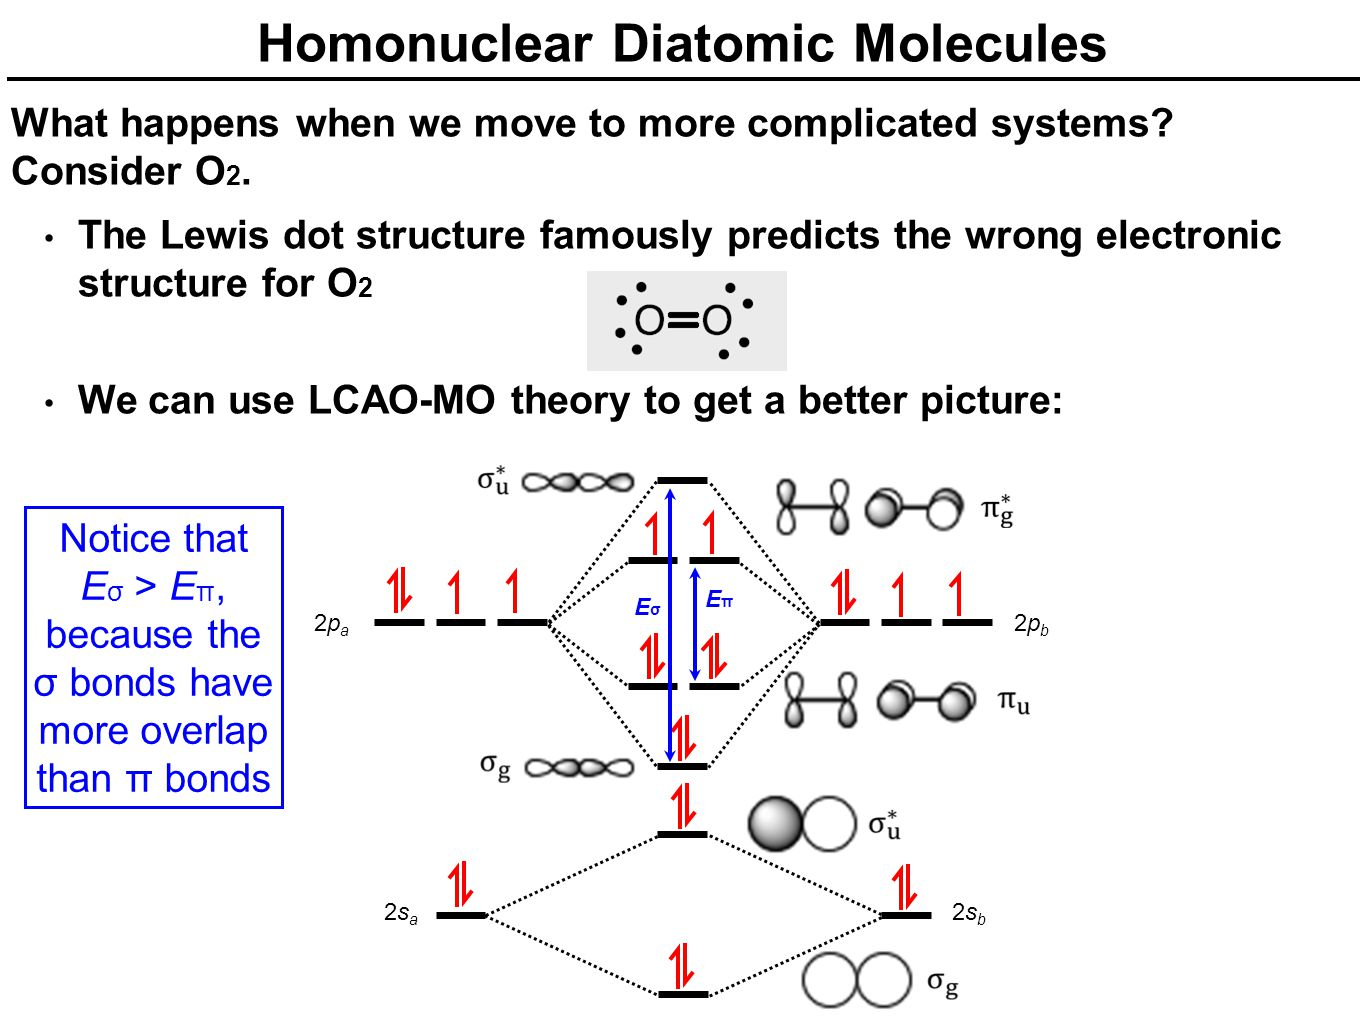 Mo diagrams for diatomic molecules chapter 5 friday october 17 homonuclear diatomic molecules what happens when we move to more complicated systems pooptronica Gallery